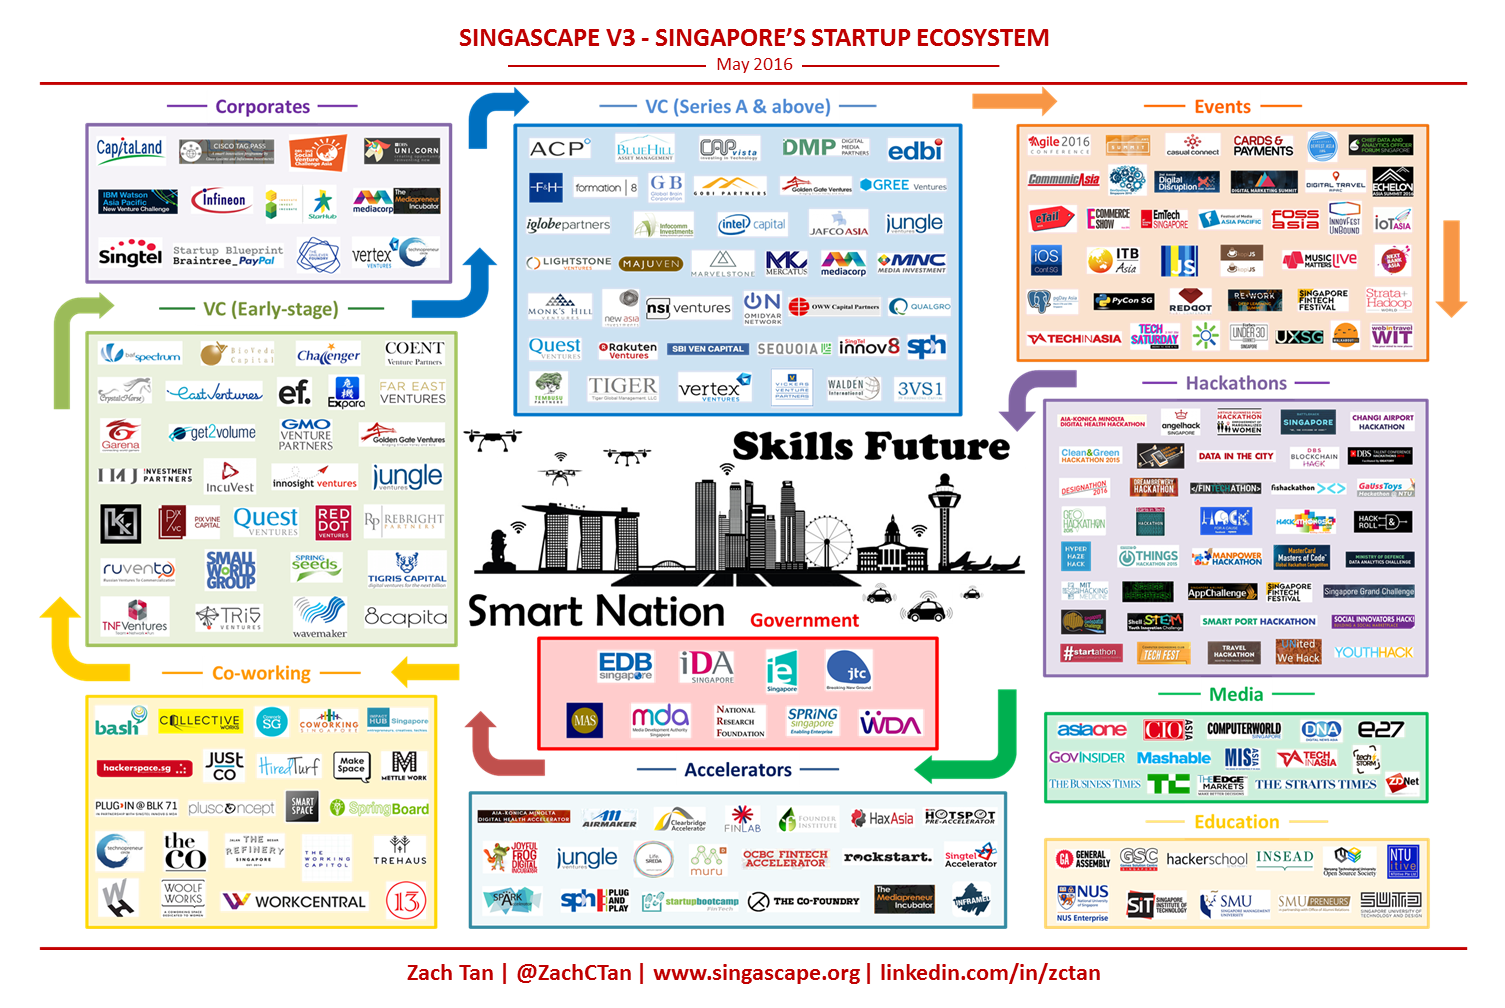 Singascape v3.0 - An Overview of SG's Tech Startup Support Ecosystem.png